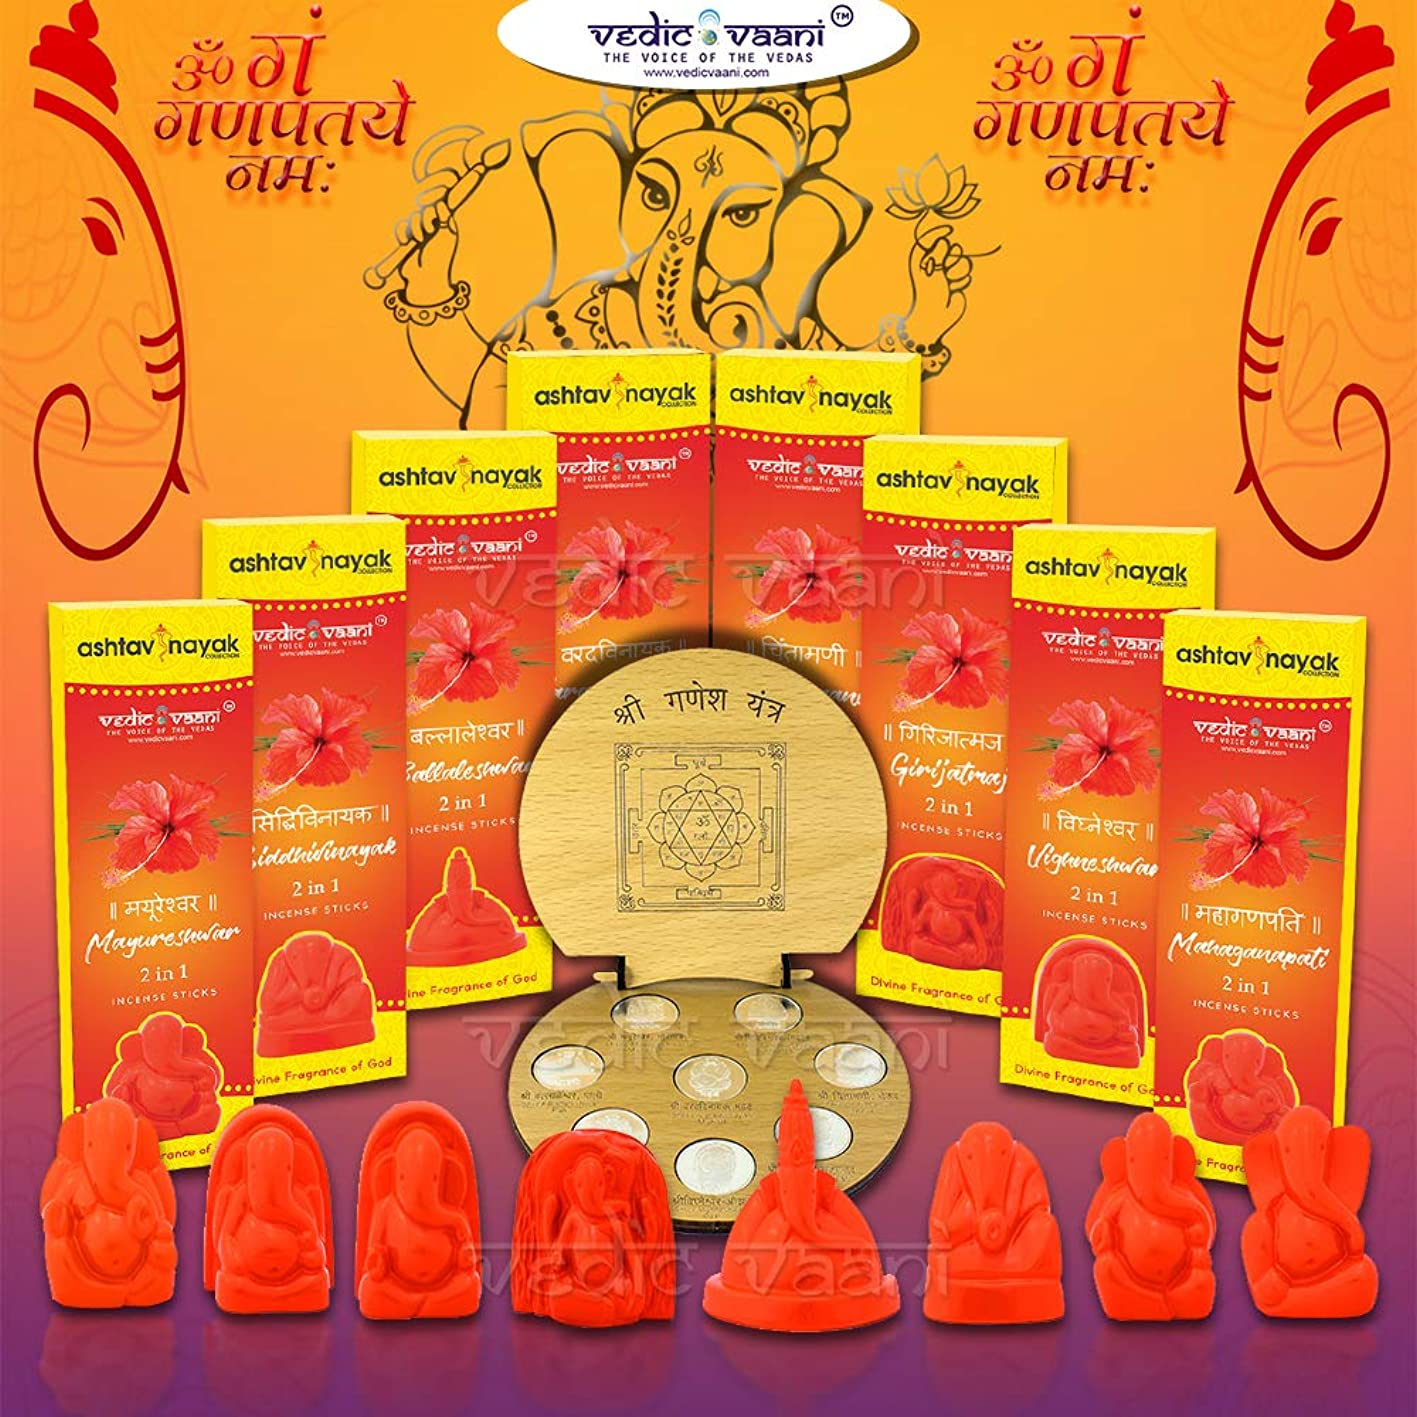 田舎マートメロディアスVedic Vaani Shree Ashtavinayak Darshan Yantra with Ashtavinayak Darshan Set & Ganesh Festival お香セット (各100GM)